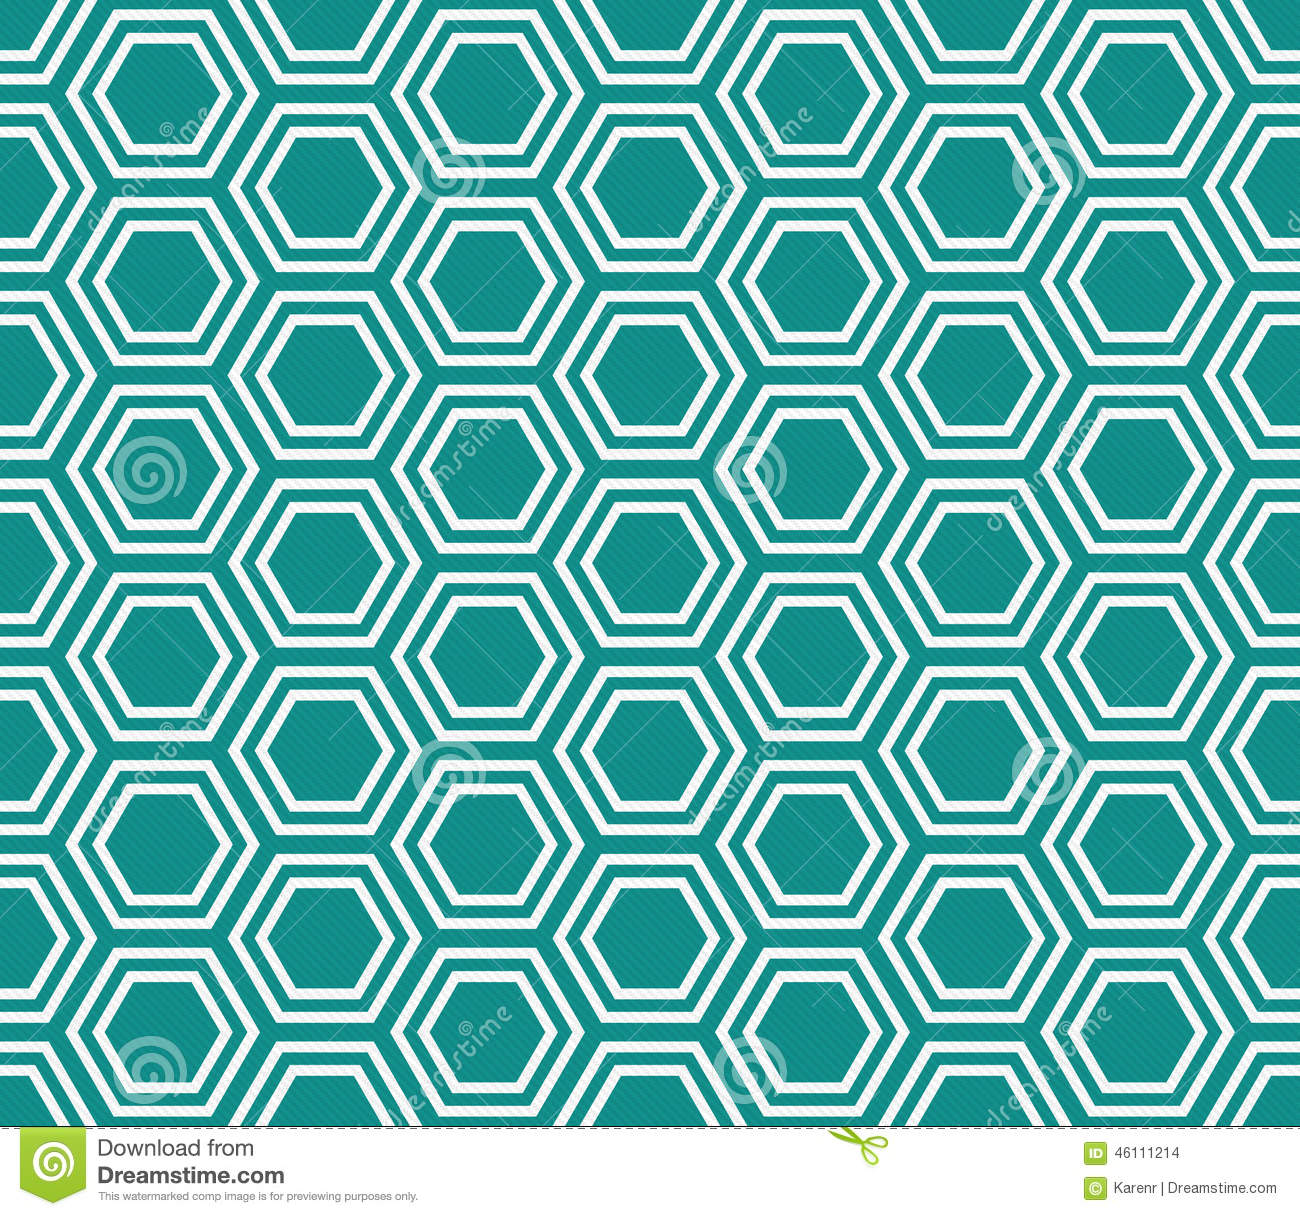 Teal And White Hexagon Tiles Pattern Repeat Background Stock Photo ...